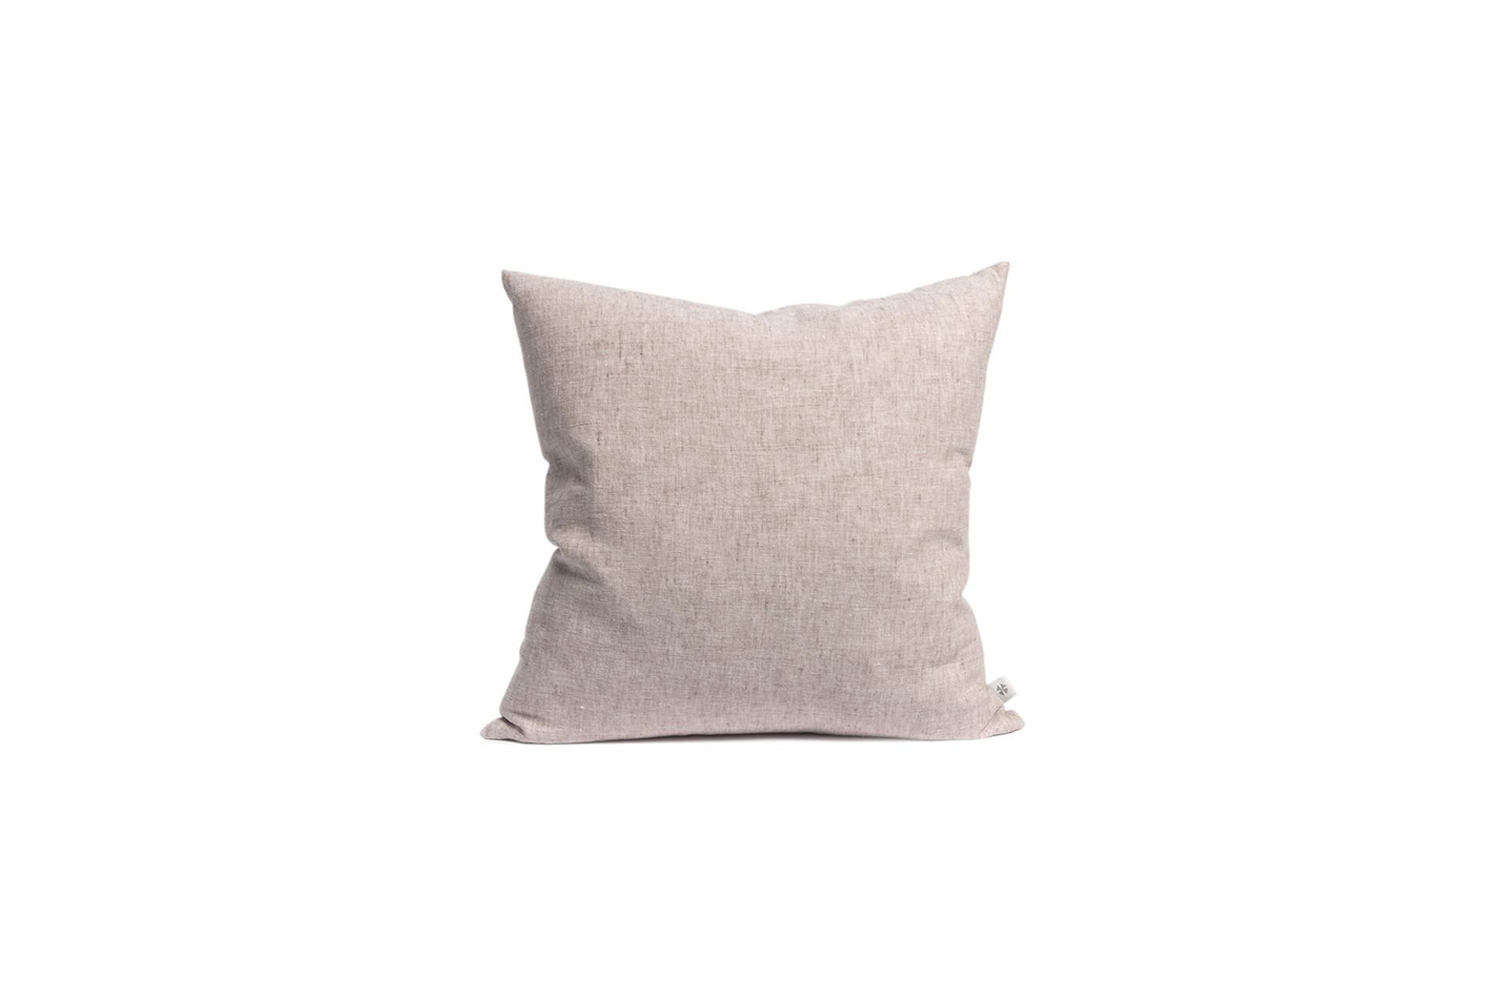 the pink throws are by mölle pink salt linen cushions; €59 each with the ins 21